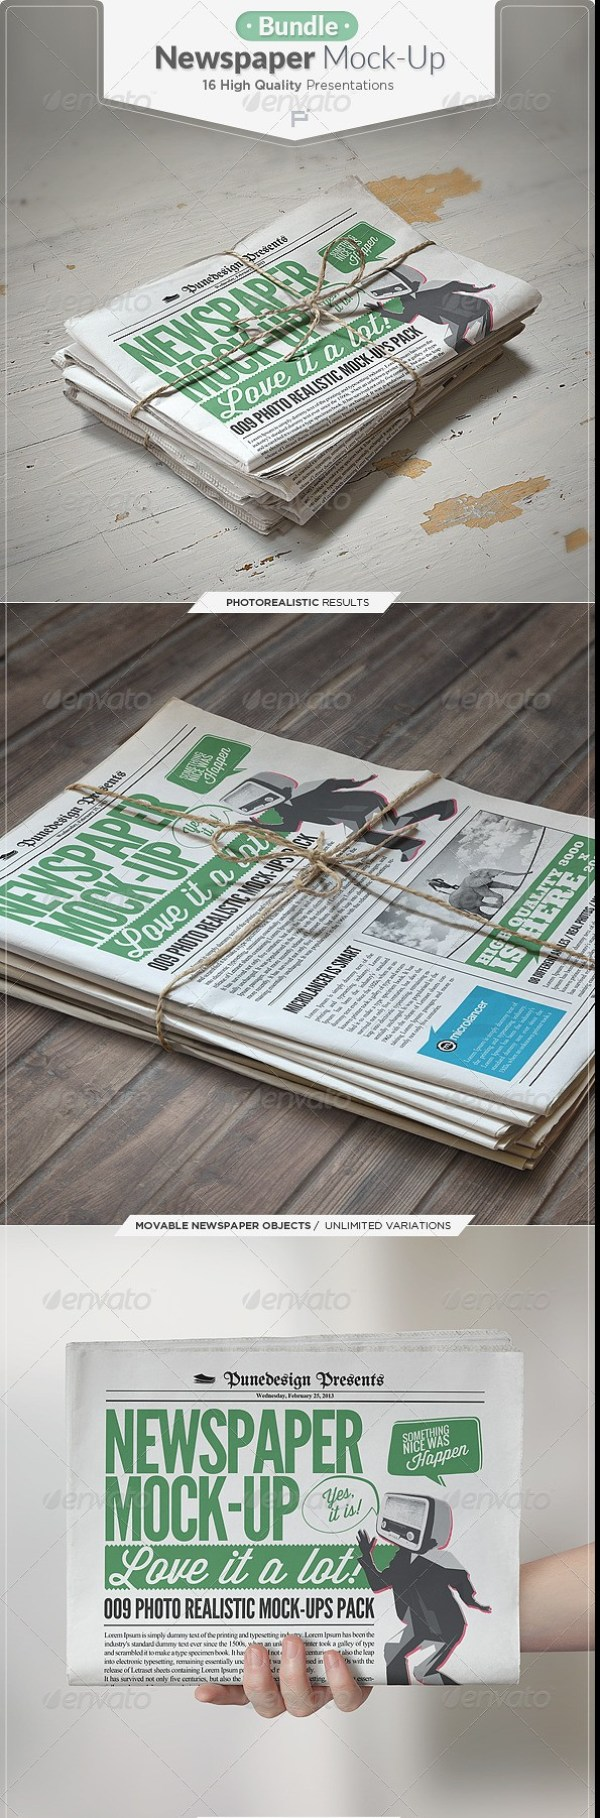 Newspaper-Mockup-Bundle